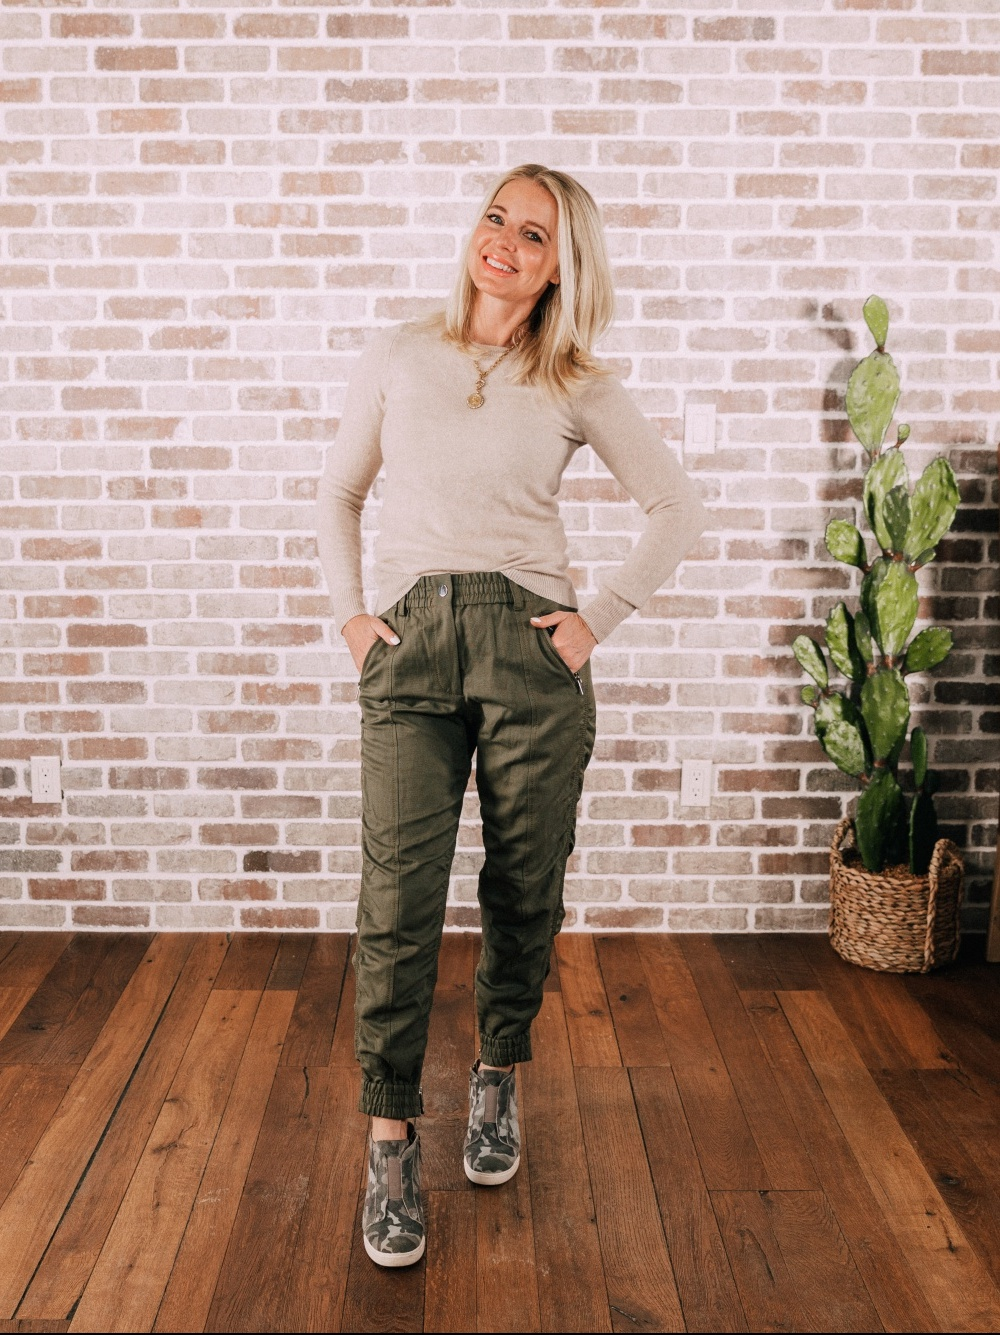 Stylish Work From Home Outfits, Fashion blogger Erin Busbee of BusbeeStyle.com wearing a beige cashmere sweater with Derek Lam green joggers and camo Linea Paolo wedge sneakers in Telluride, Colorado